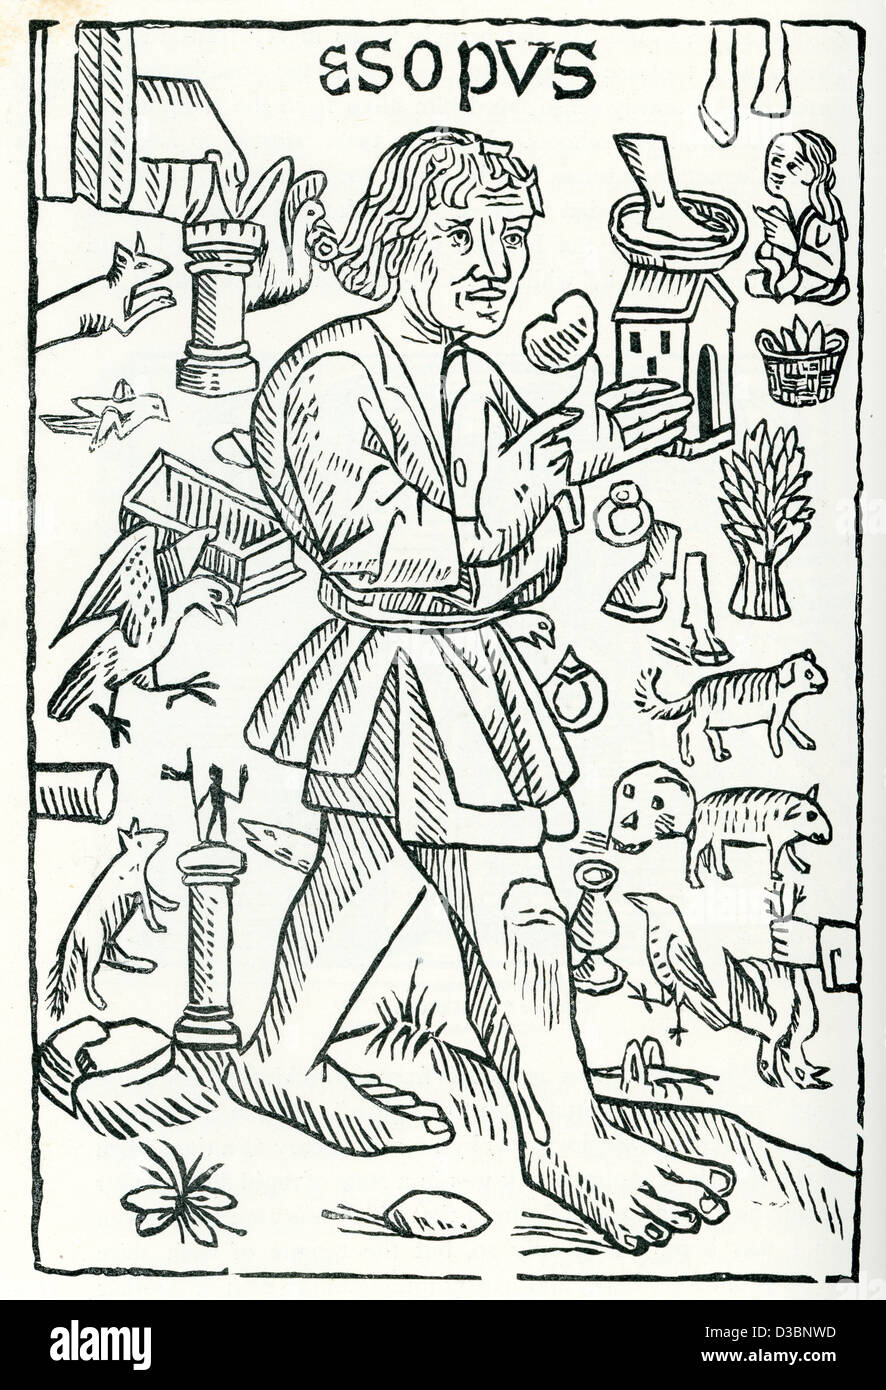 Vintage engraving of Aesop the Frontispiece to William Caxton's Fable of Aesop - Stock Image